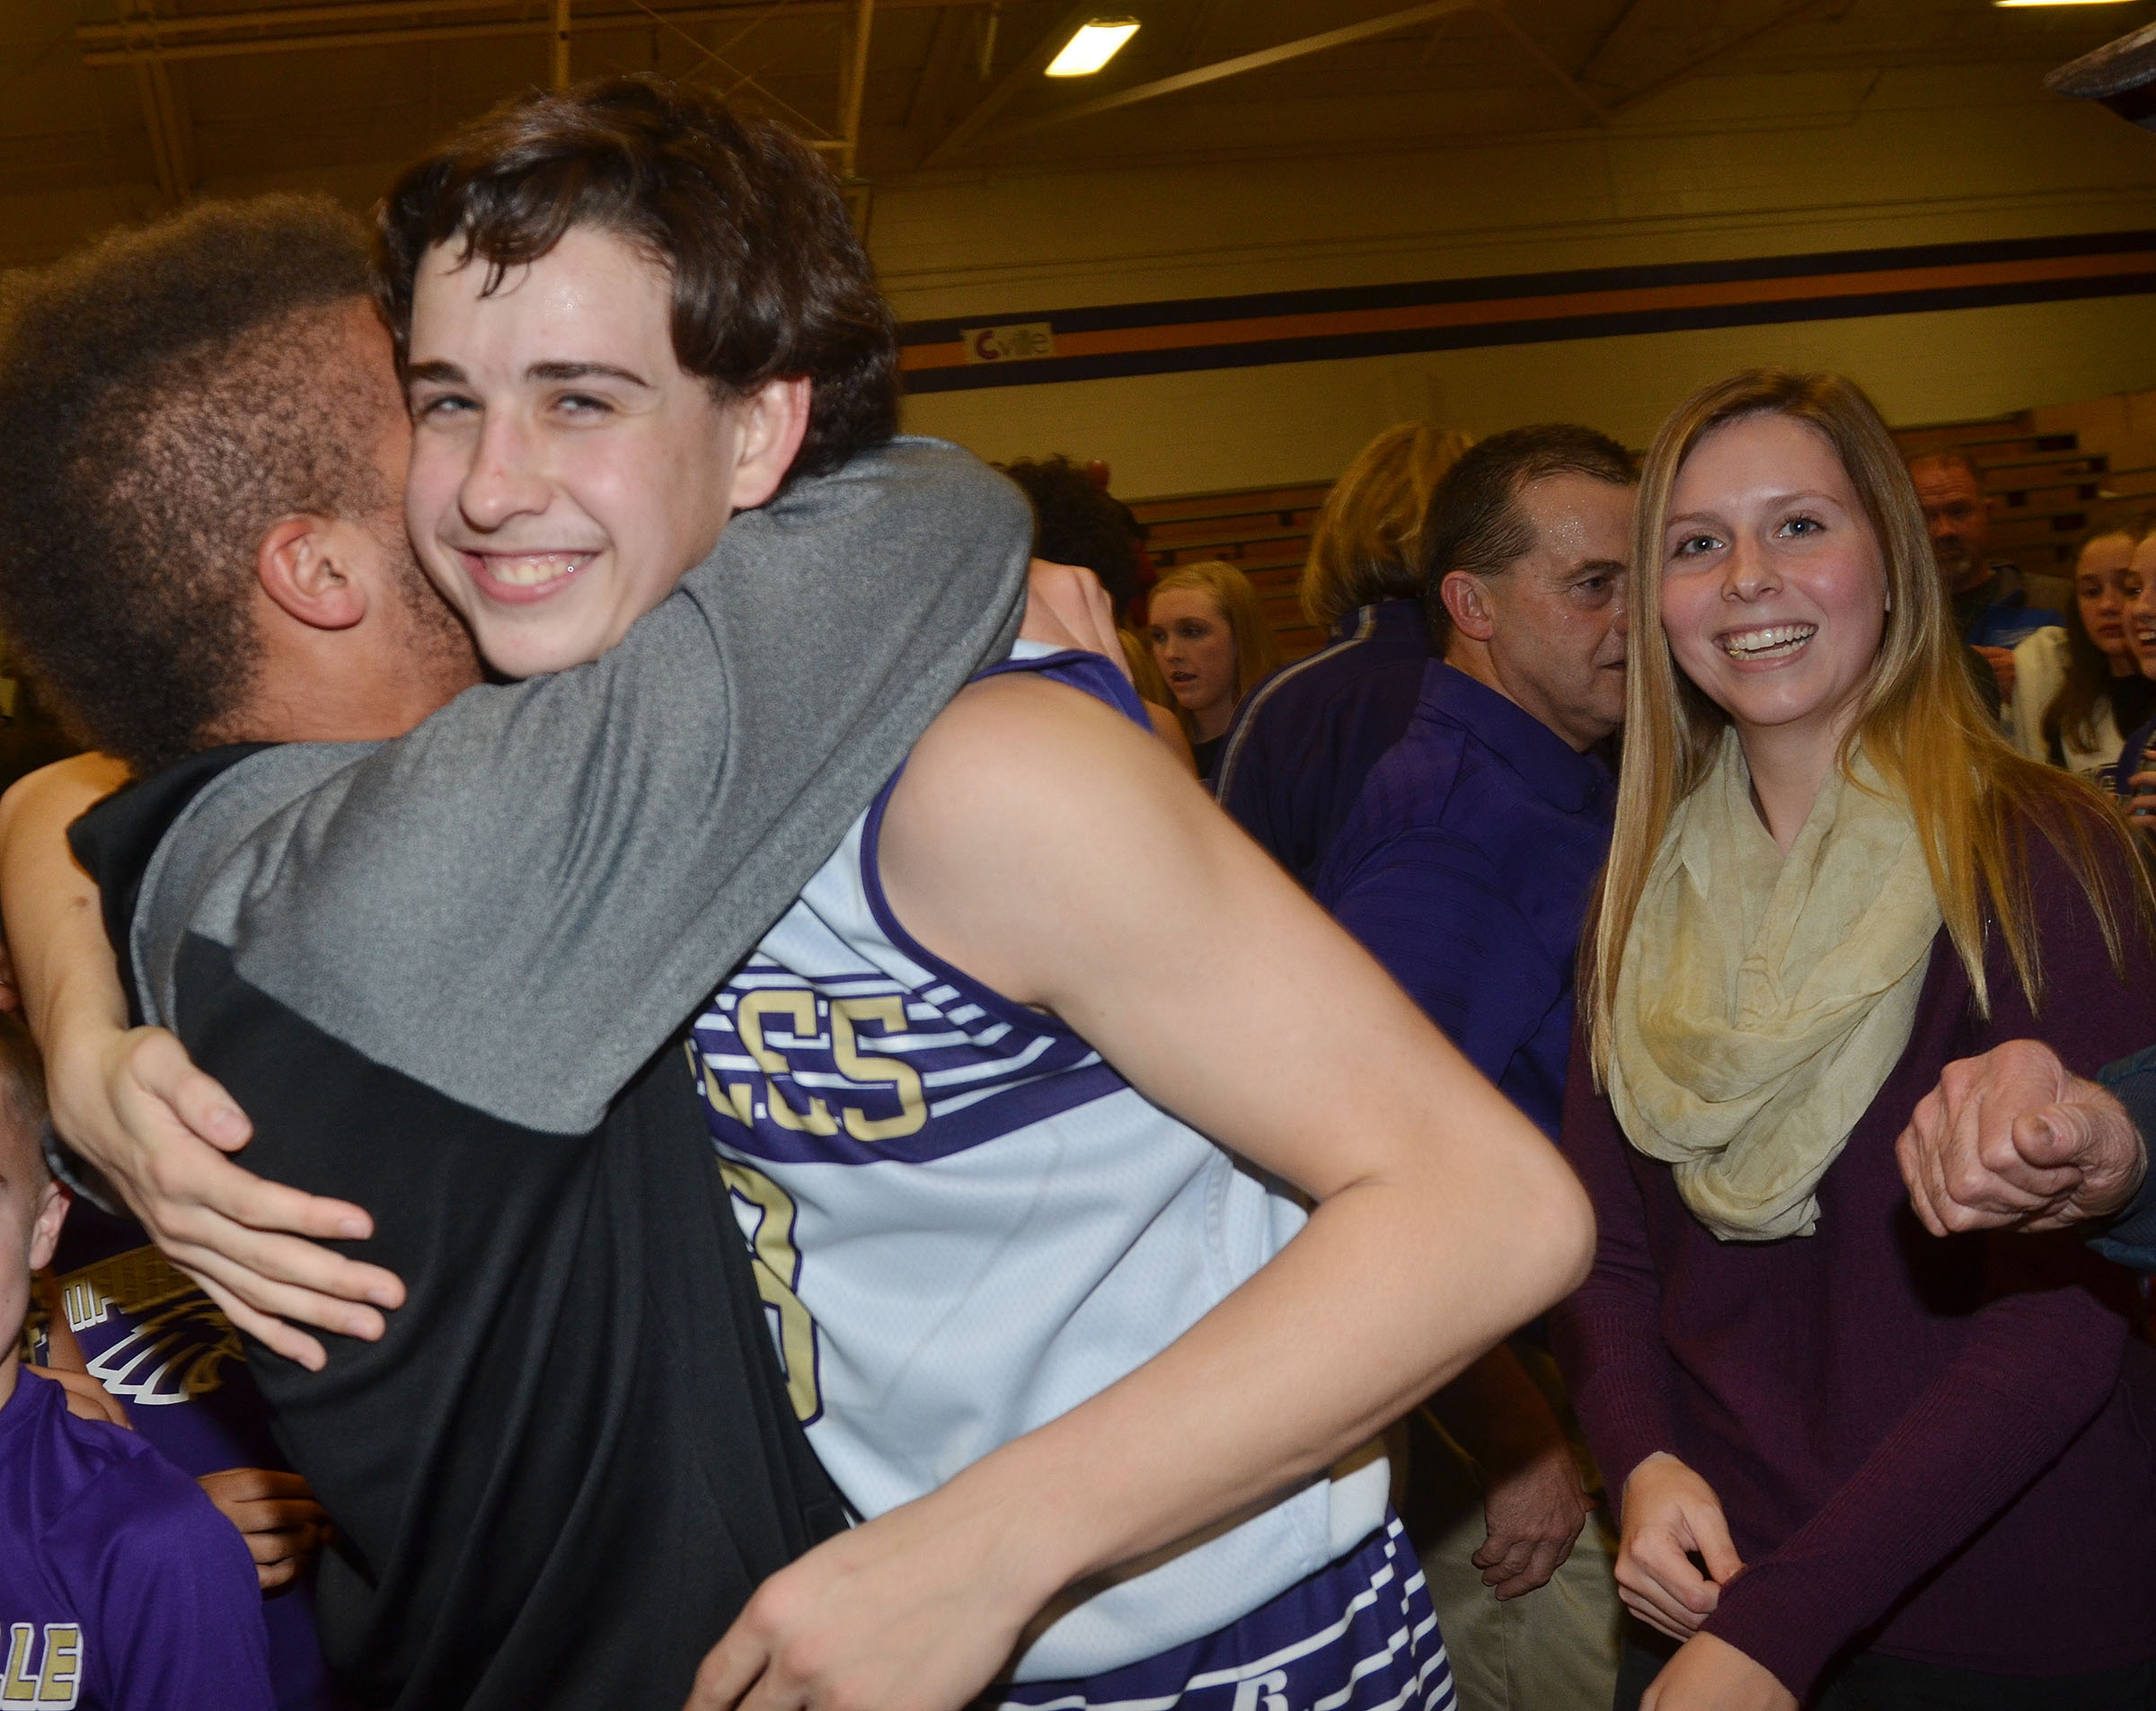 CMS eighth-grader John Orberson hugs Campbellsville High School junior Ethan Lay after the game. At right is Orberson's sister, Becca.